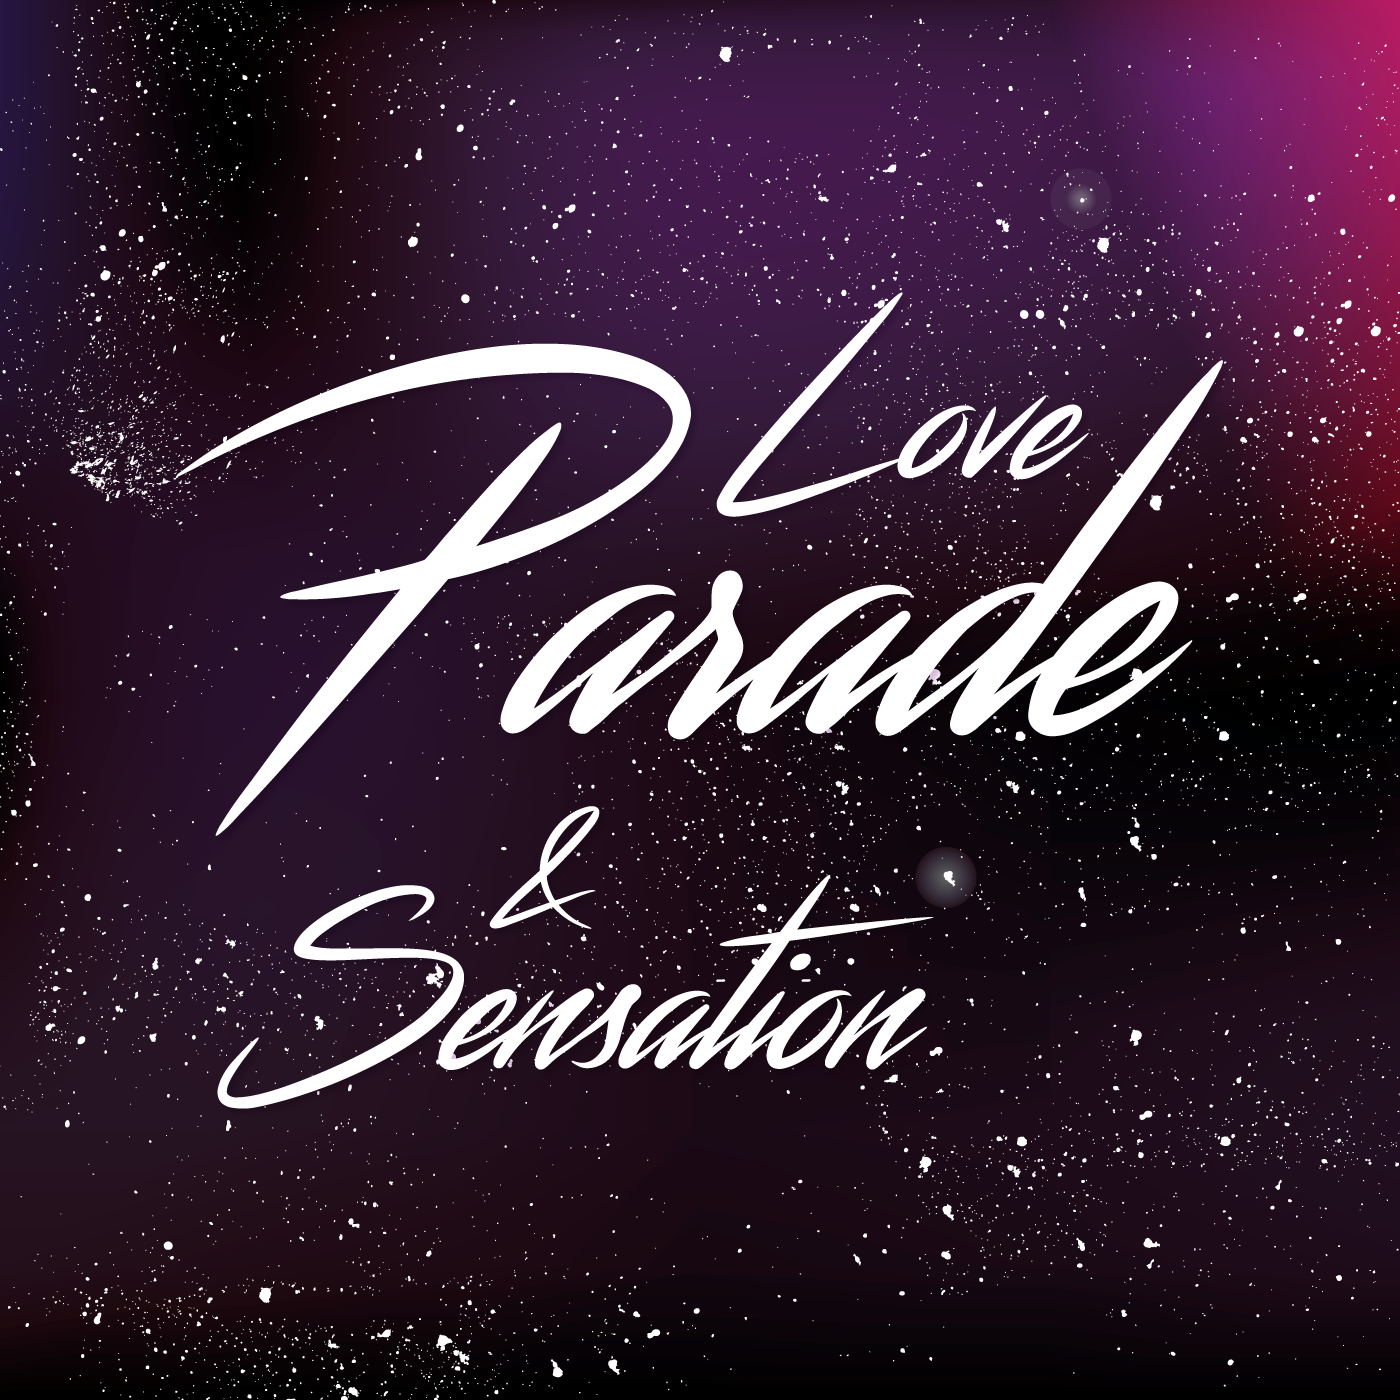 Love Parade & Sensation